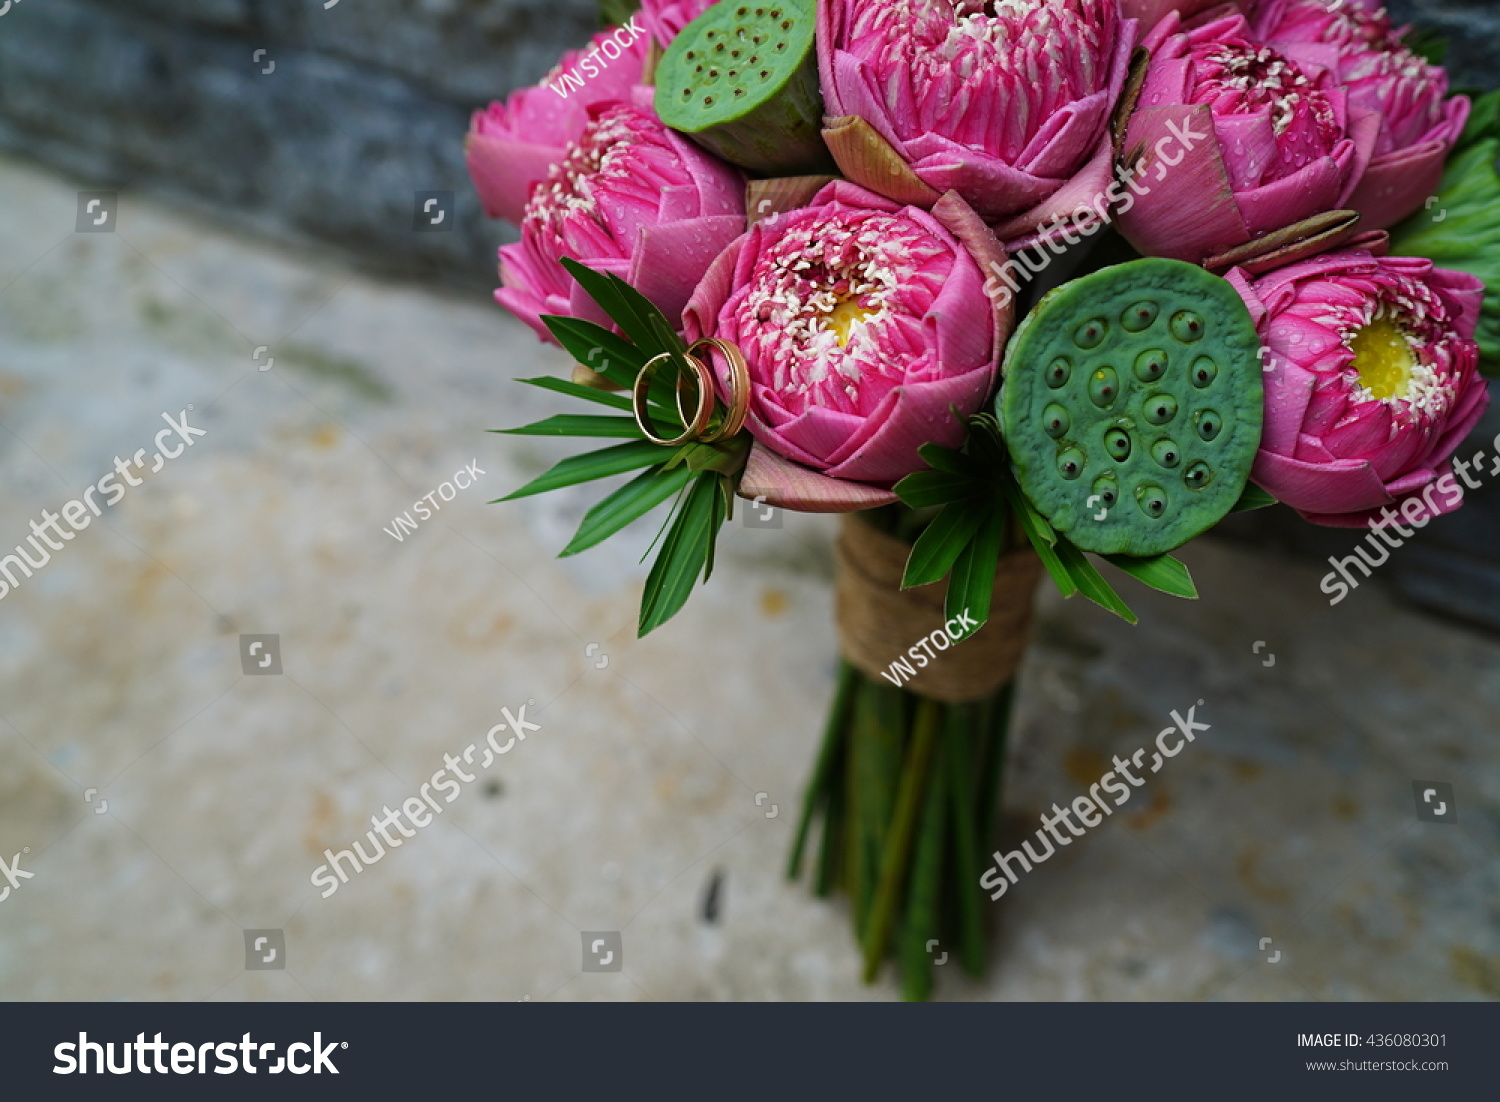 Lotus Bouquet Flower Wedding Stock Photo (Edit Now) 436080301 ...